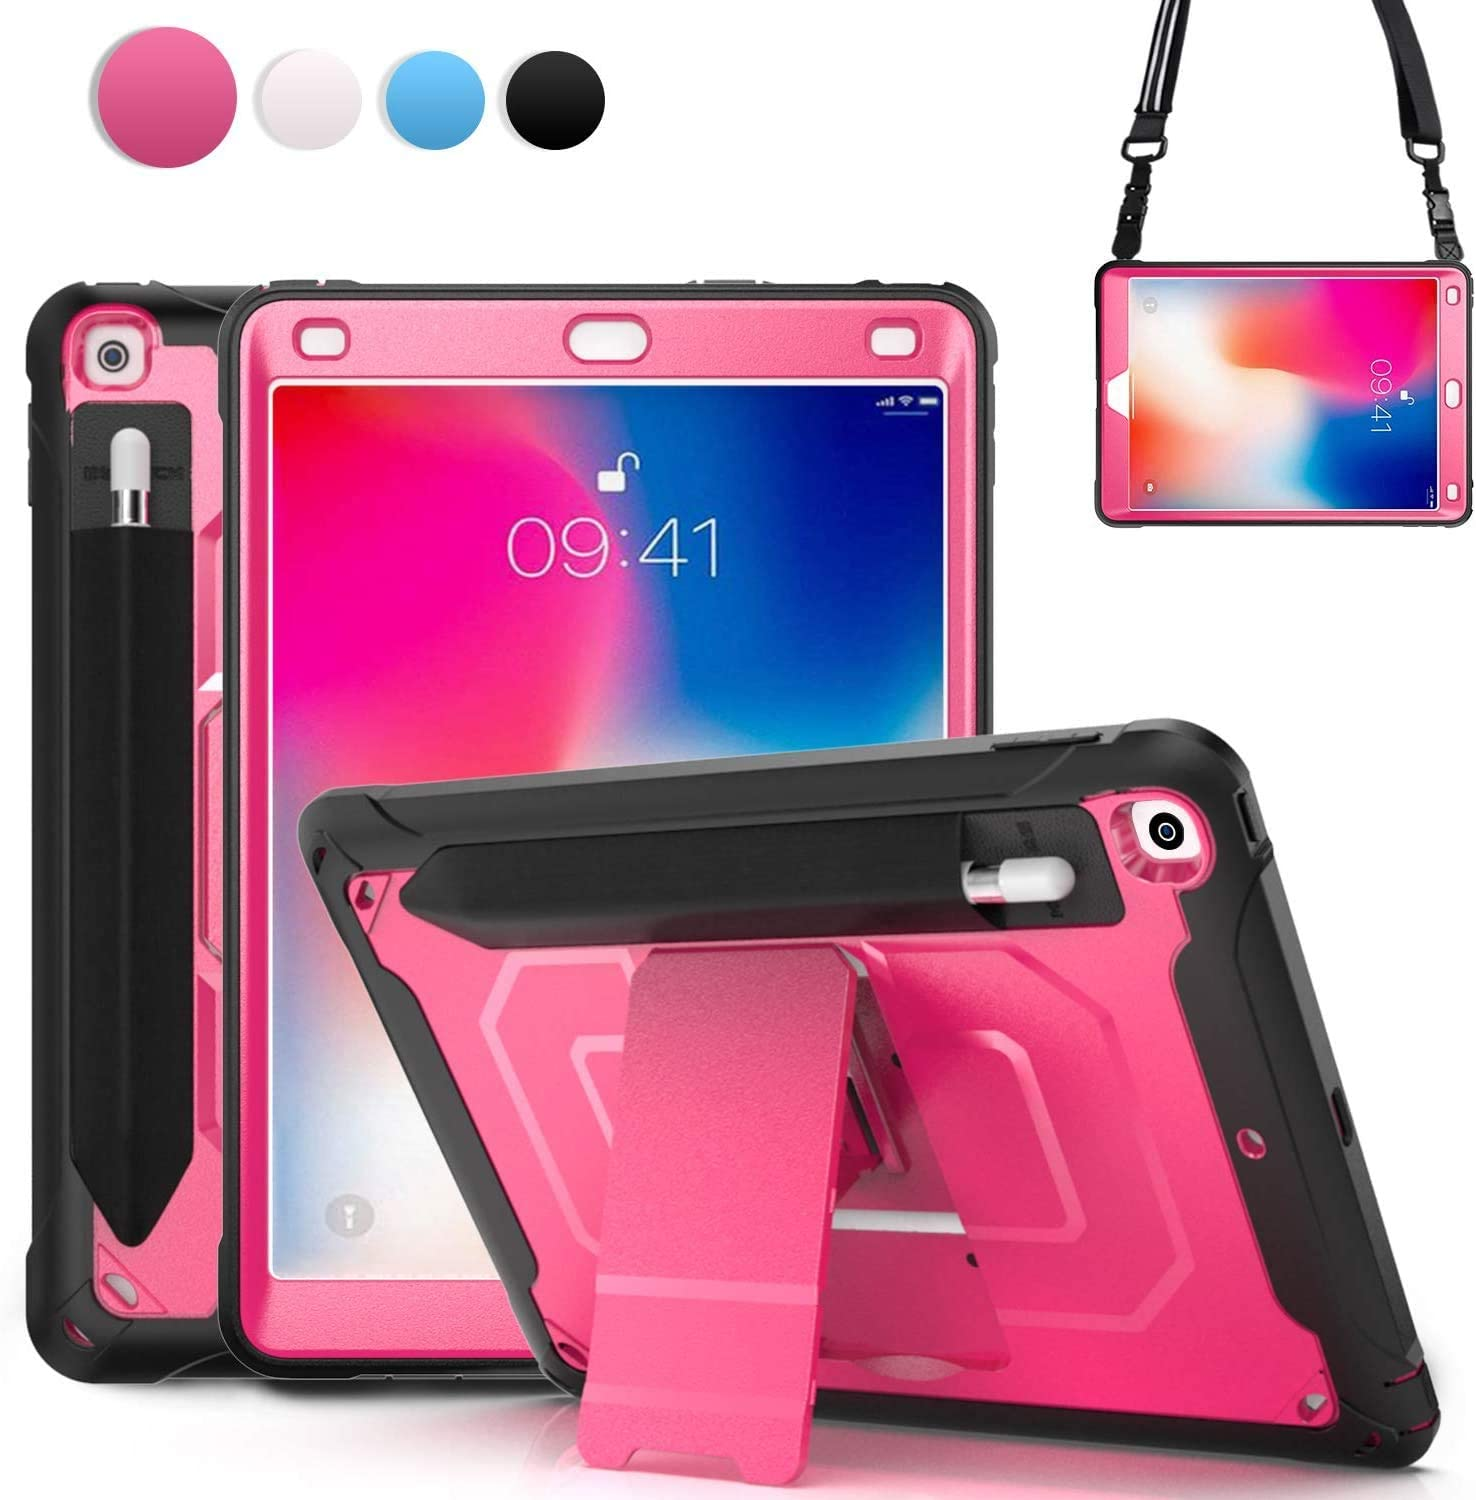 iPad 9.7 Case for Kids 2018 2017 | TSQ 6th Generation iPad Case Rugged Shockproof | Durable Hard Case w/ Elastic Pencil Pocket Stand Shoulder Strap for iPad 5th Gen A1822/A1823/A1954/A1893, Rose Red